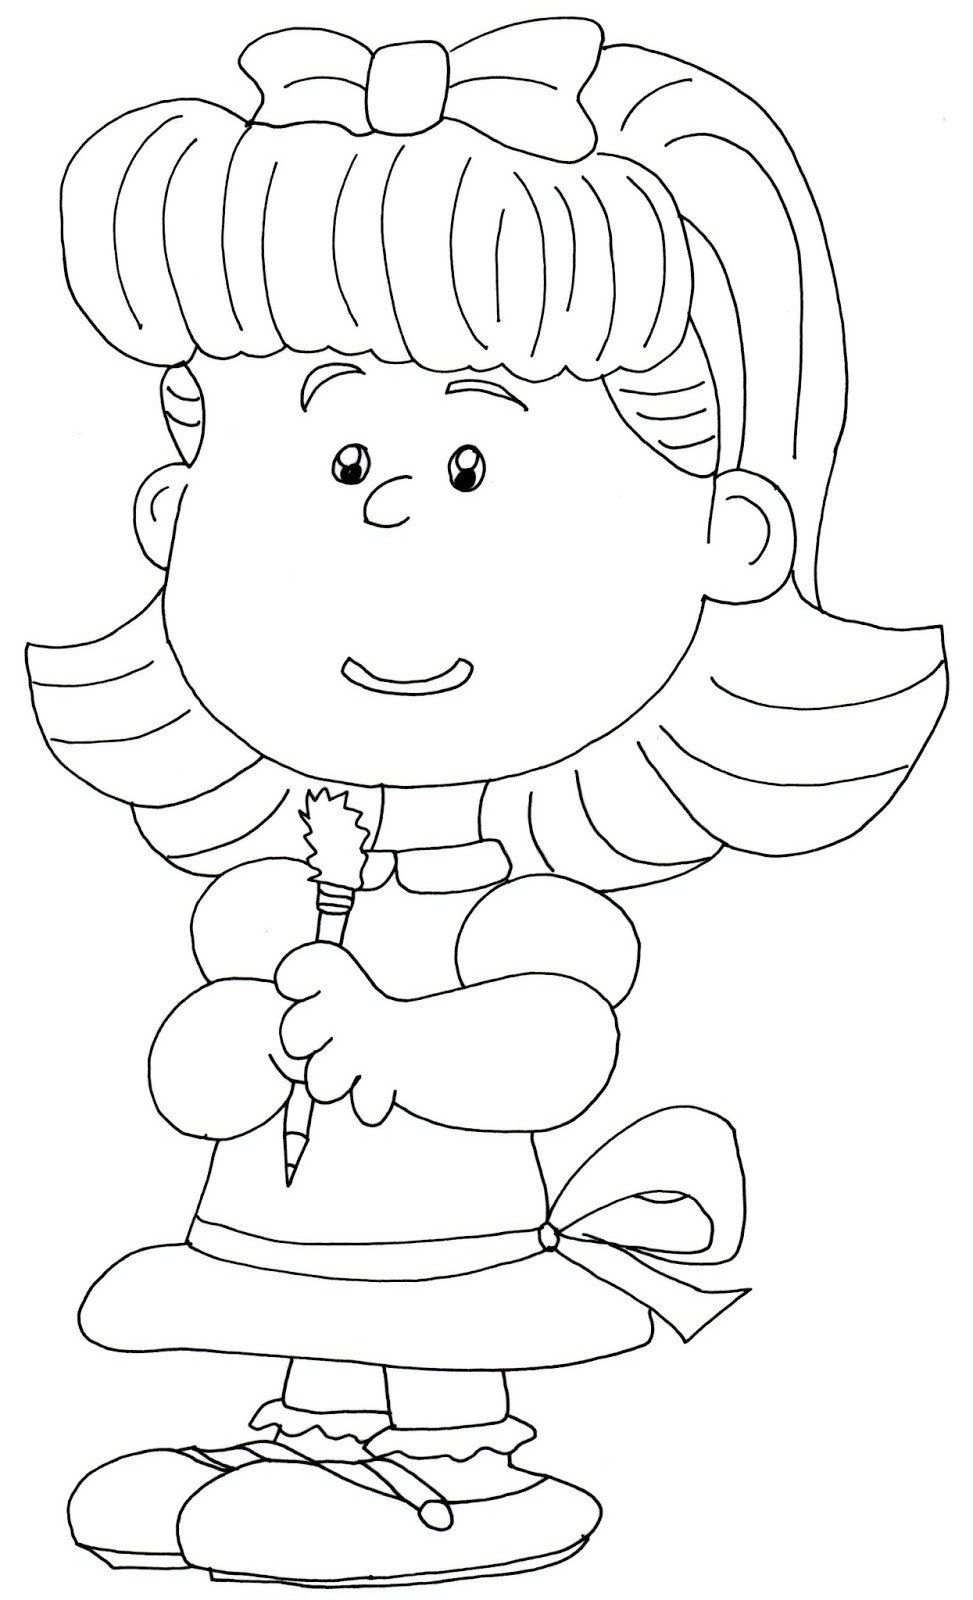 Charlie Brown Coloring Pages Free Charlie Brown Snoopy and